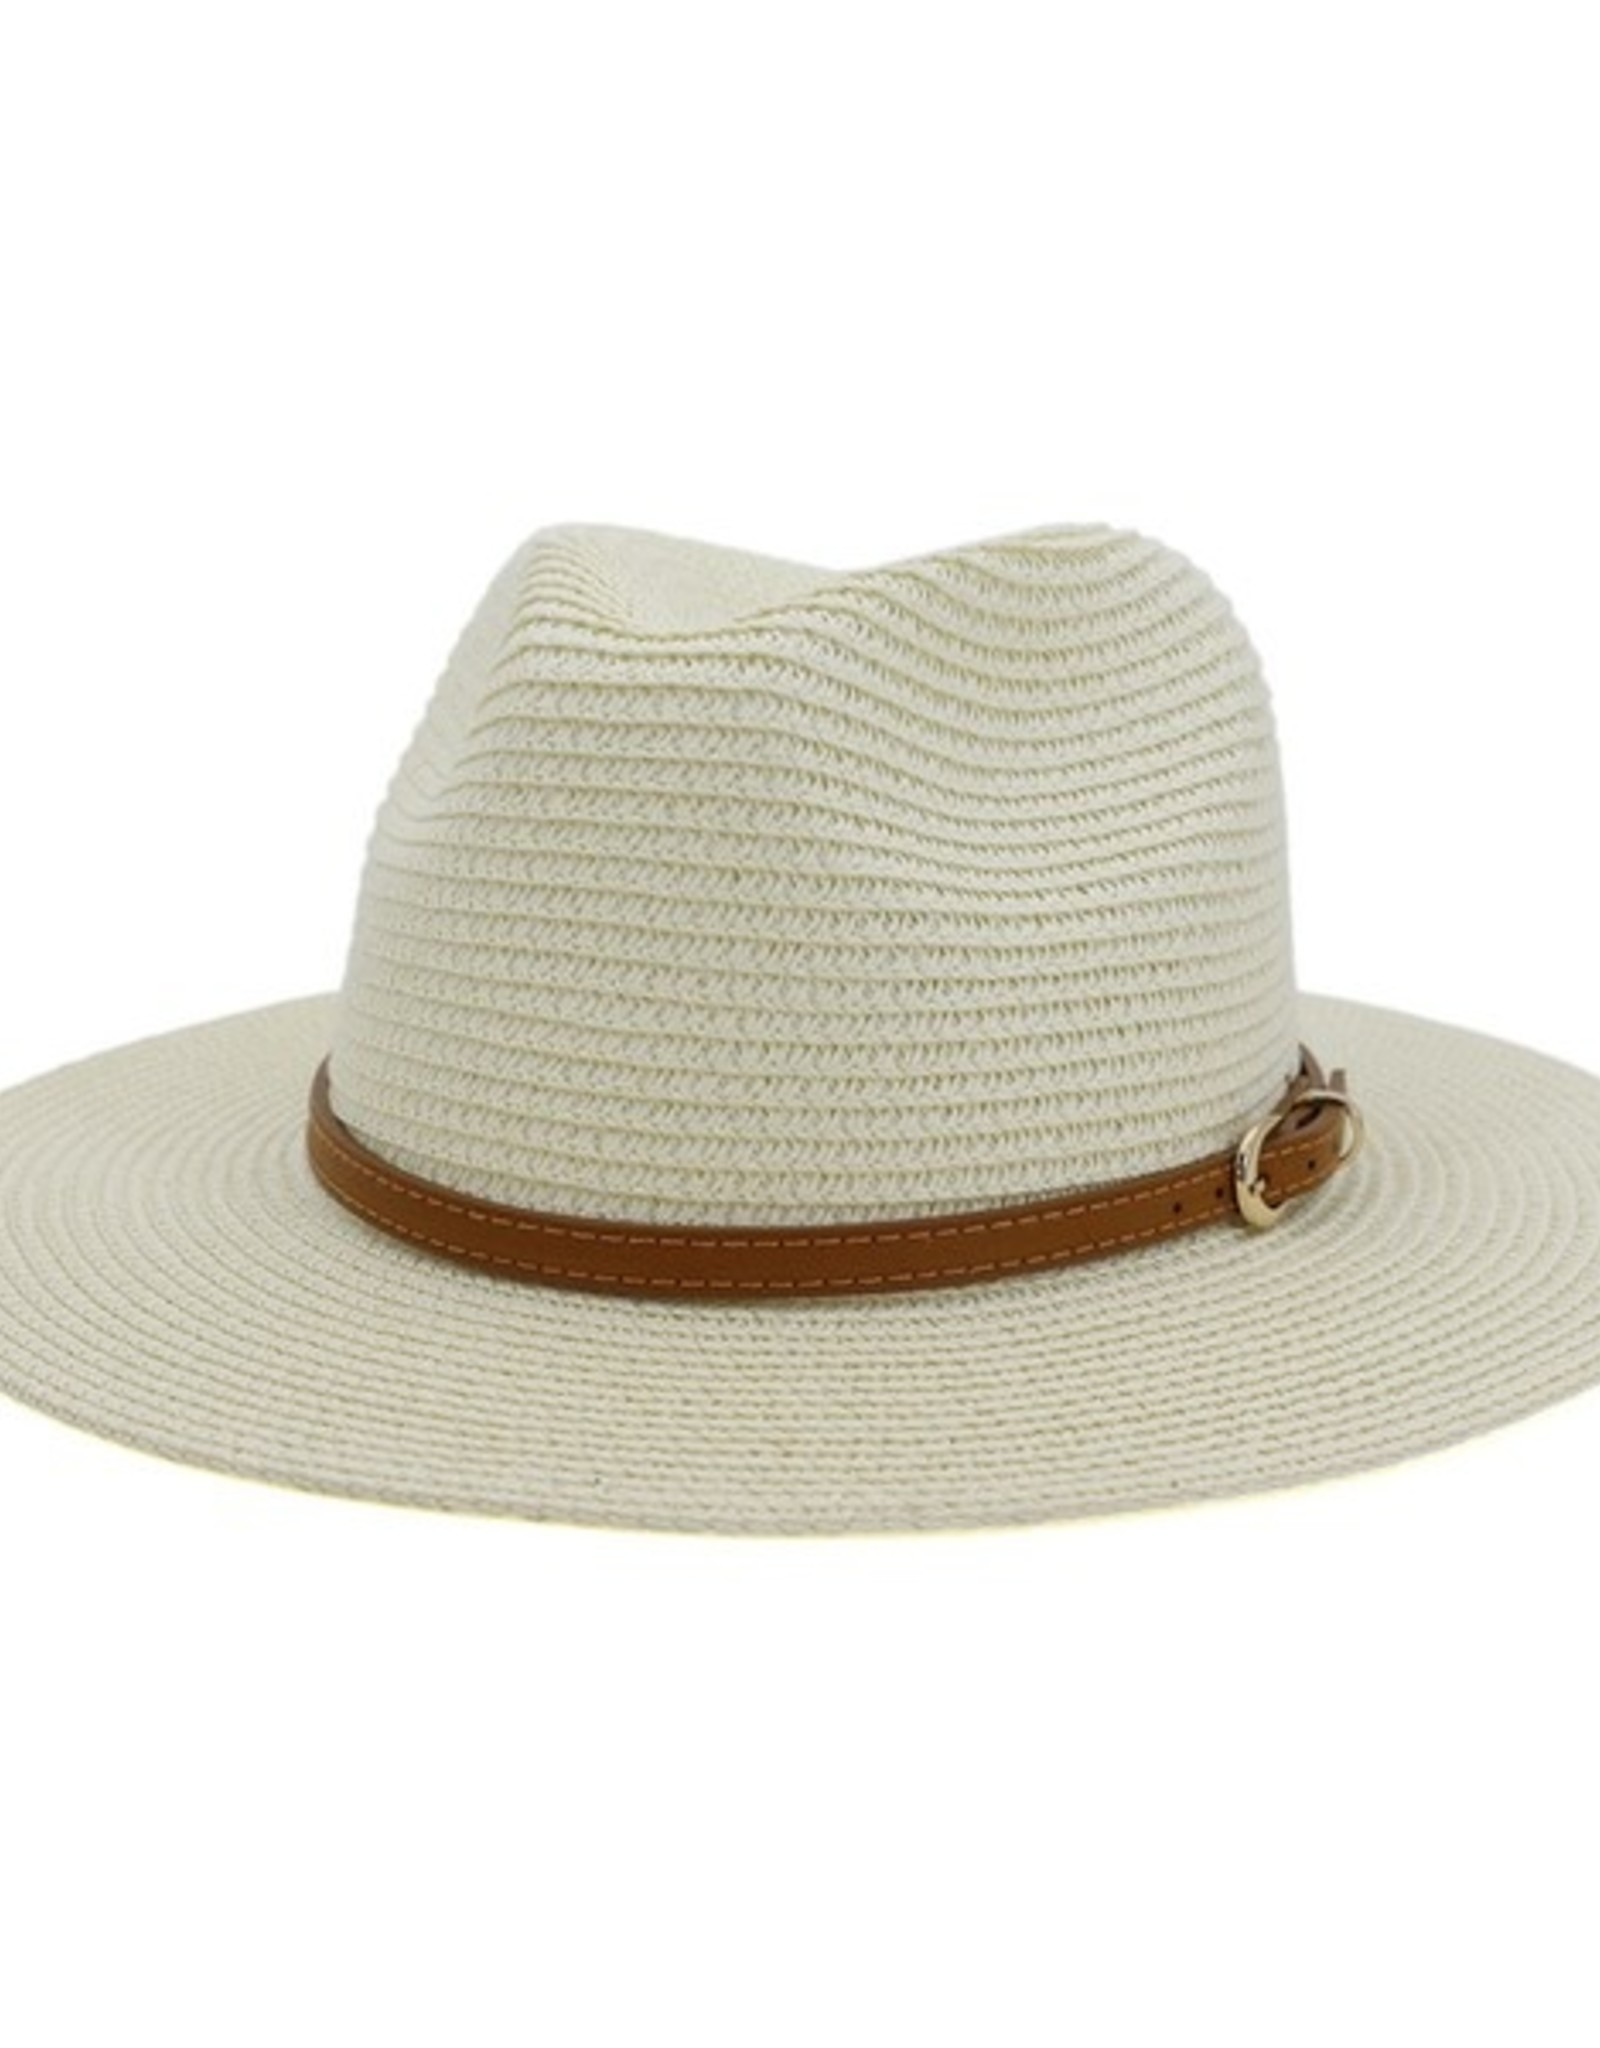 Wink Straw Hat with Leather Hat Band